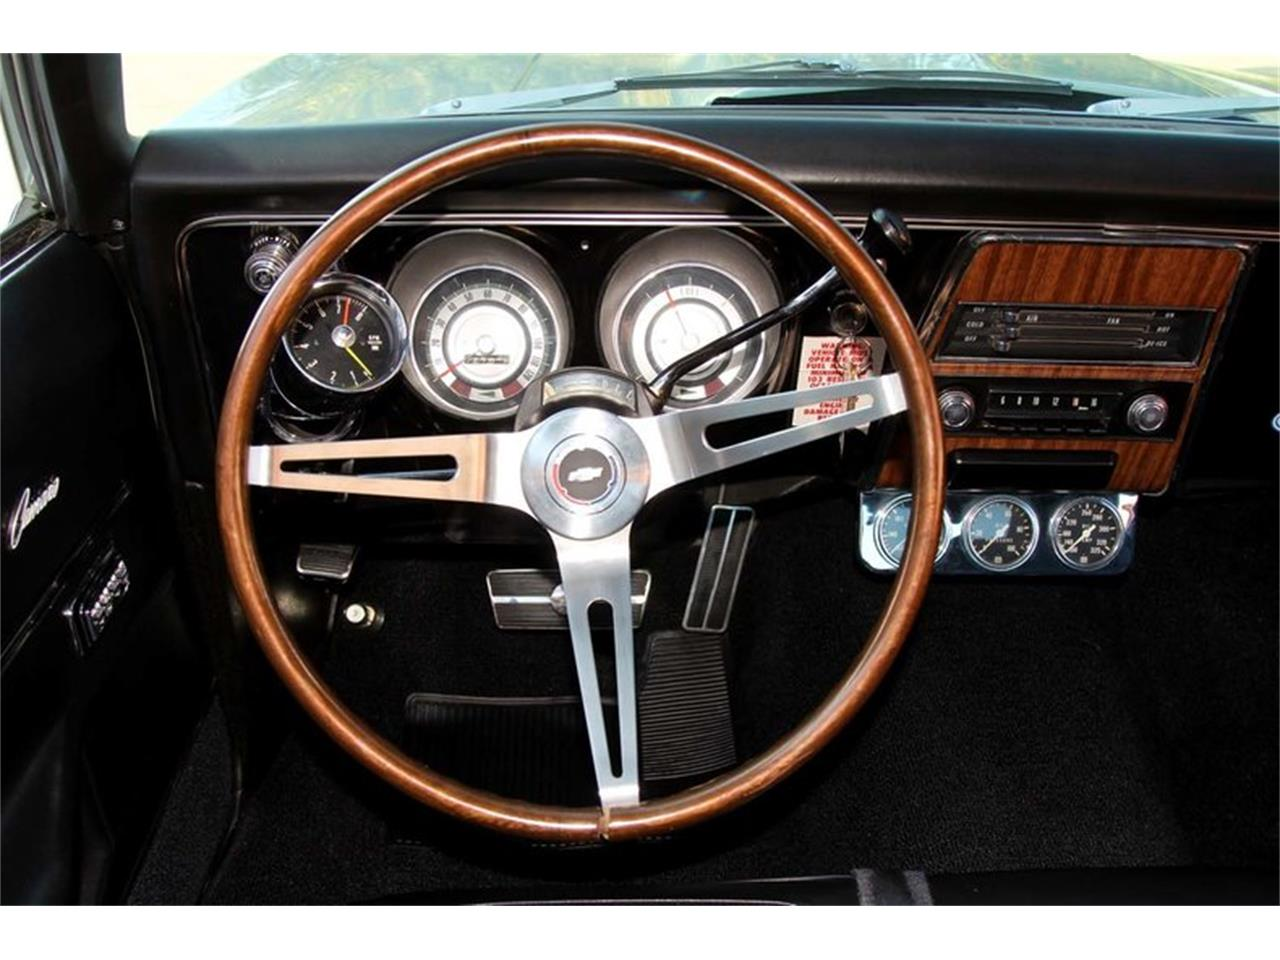 Large Picture of '68 Camaro located in Lenoir City Tennessee - $174,995.00 - N6SC